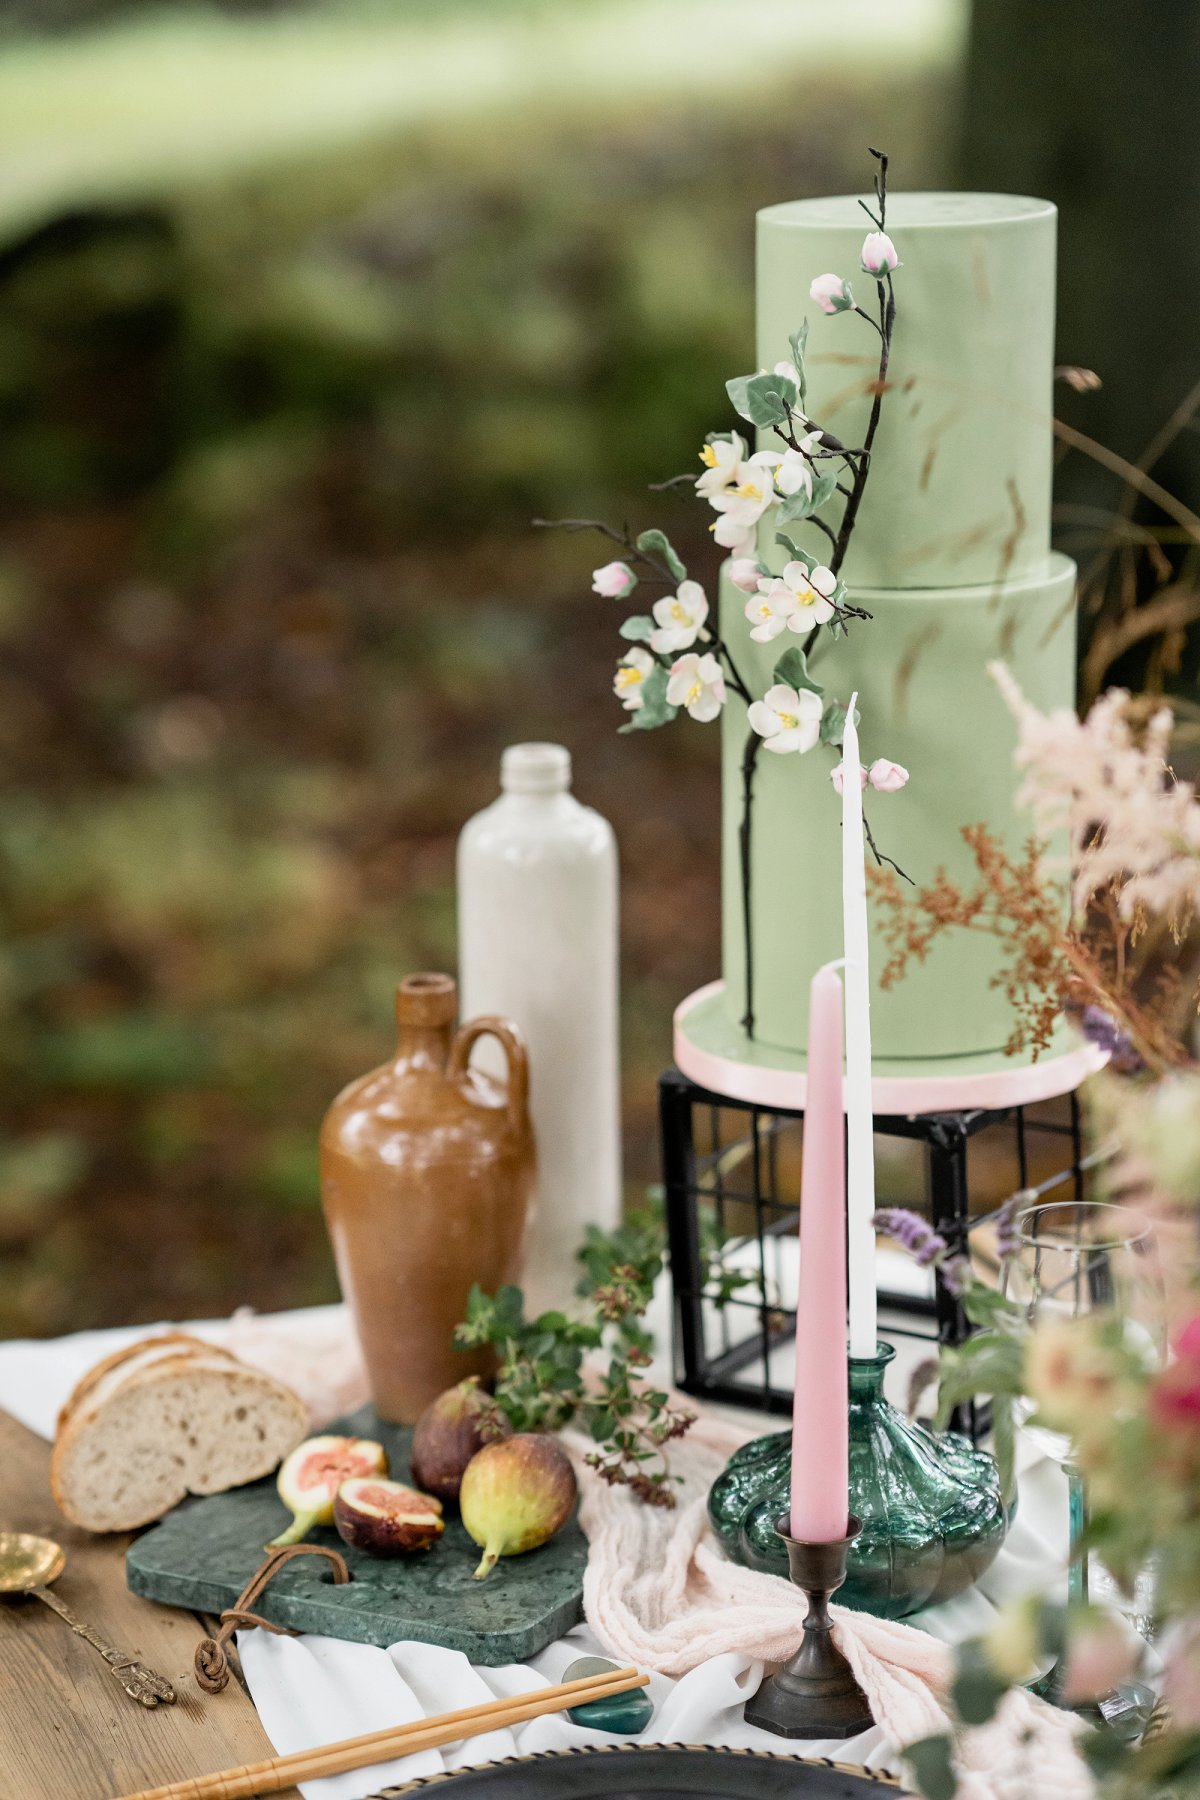 A Styled Woodland Wedding Shoot for Glorious By Heidi at Heaton House Farm (c) Charlotte Palazzo Photography (11)